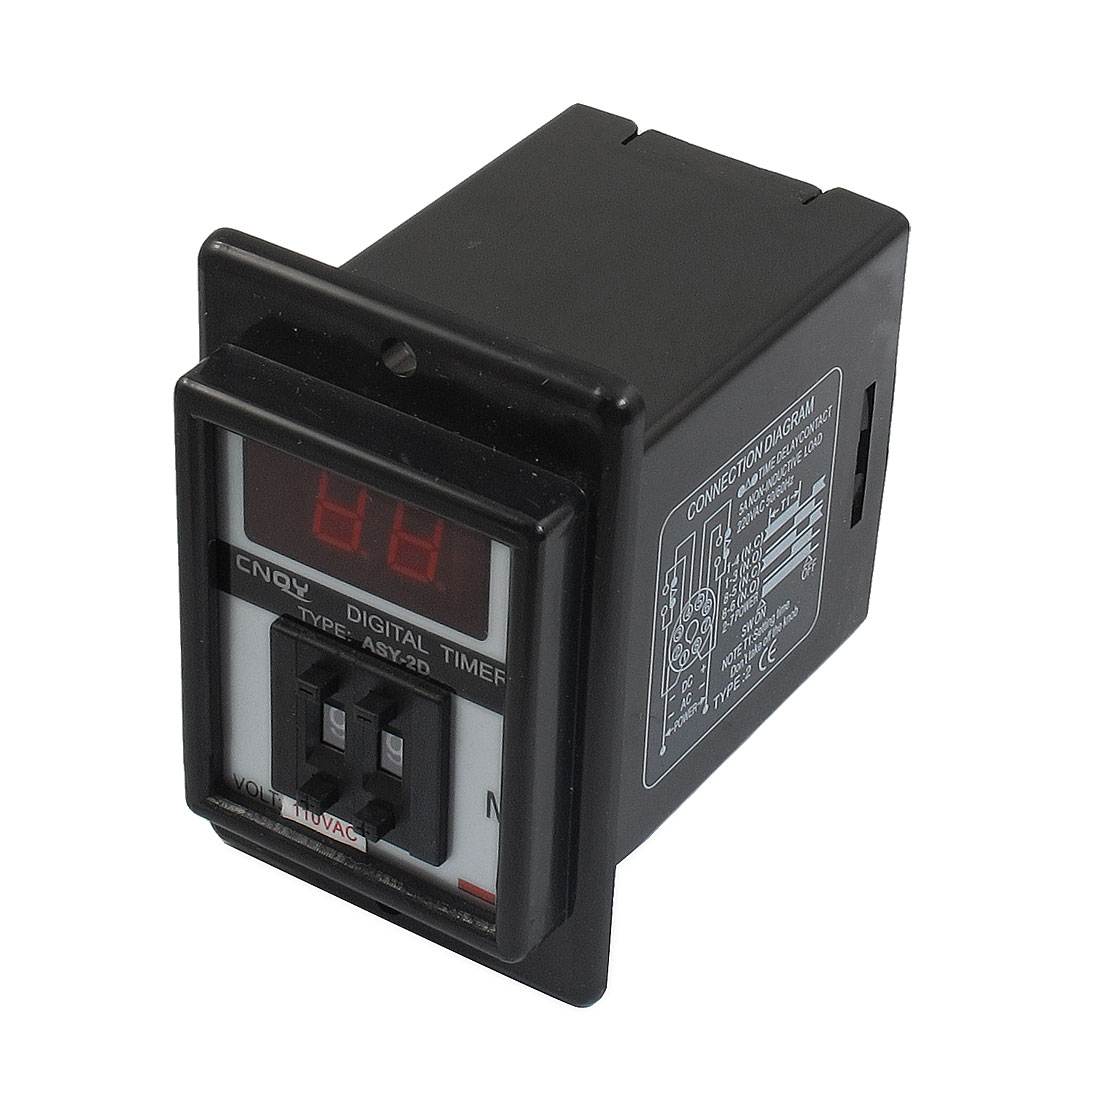 AC 110V 1-99 Minute Digital Timer Time Delay Relay 8 Pin ASY-2D